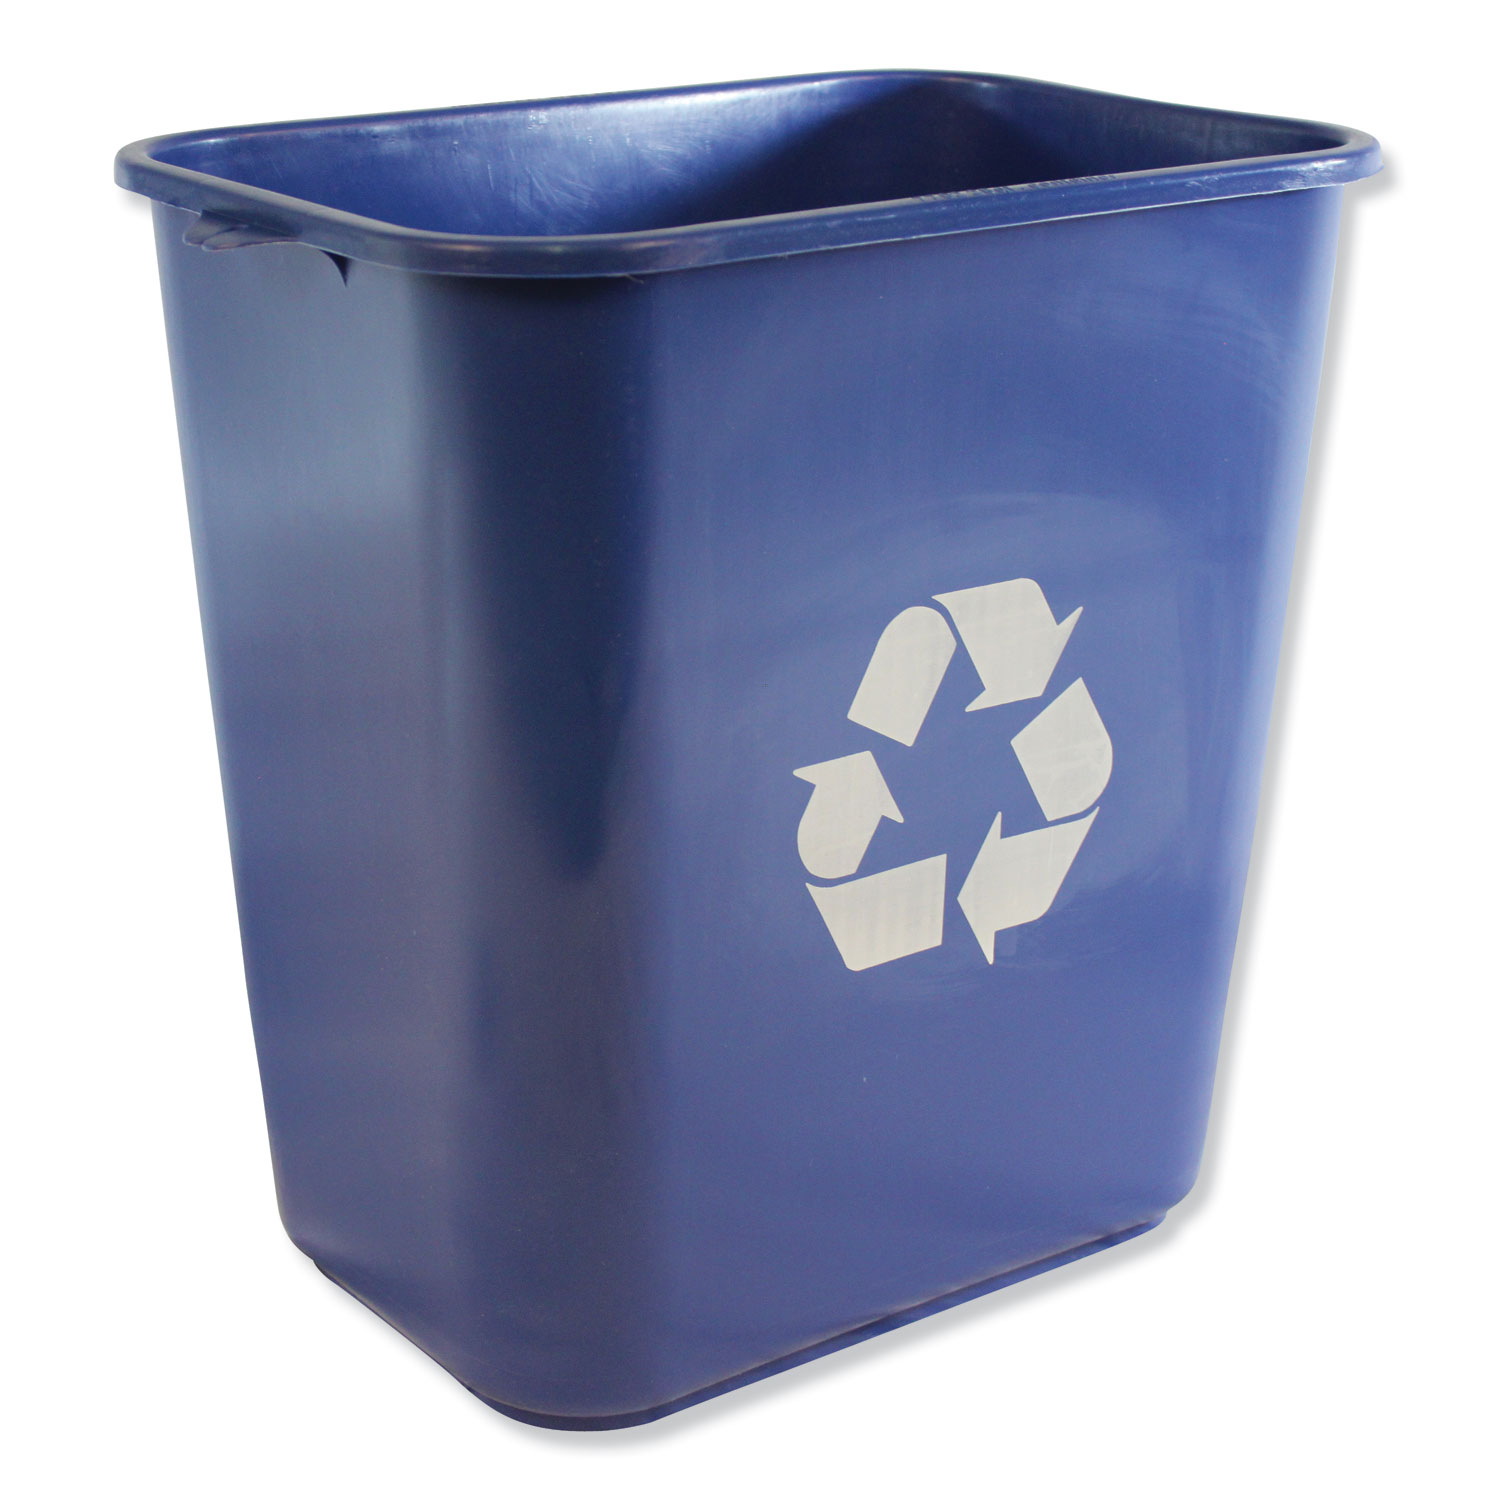 Soft-Sided Recycle Logo Plastic Wastebasket, Rectangular, 28 qt, Polyethylene, Blue